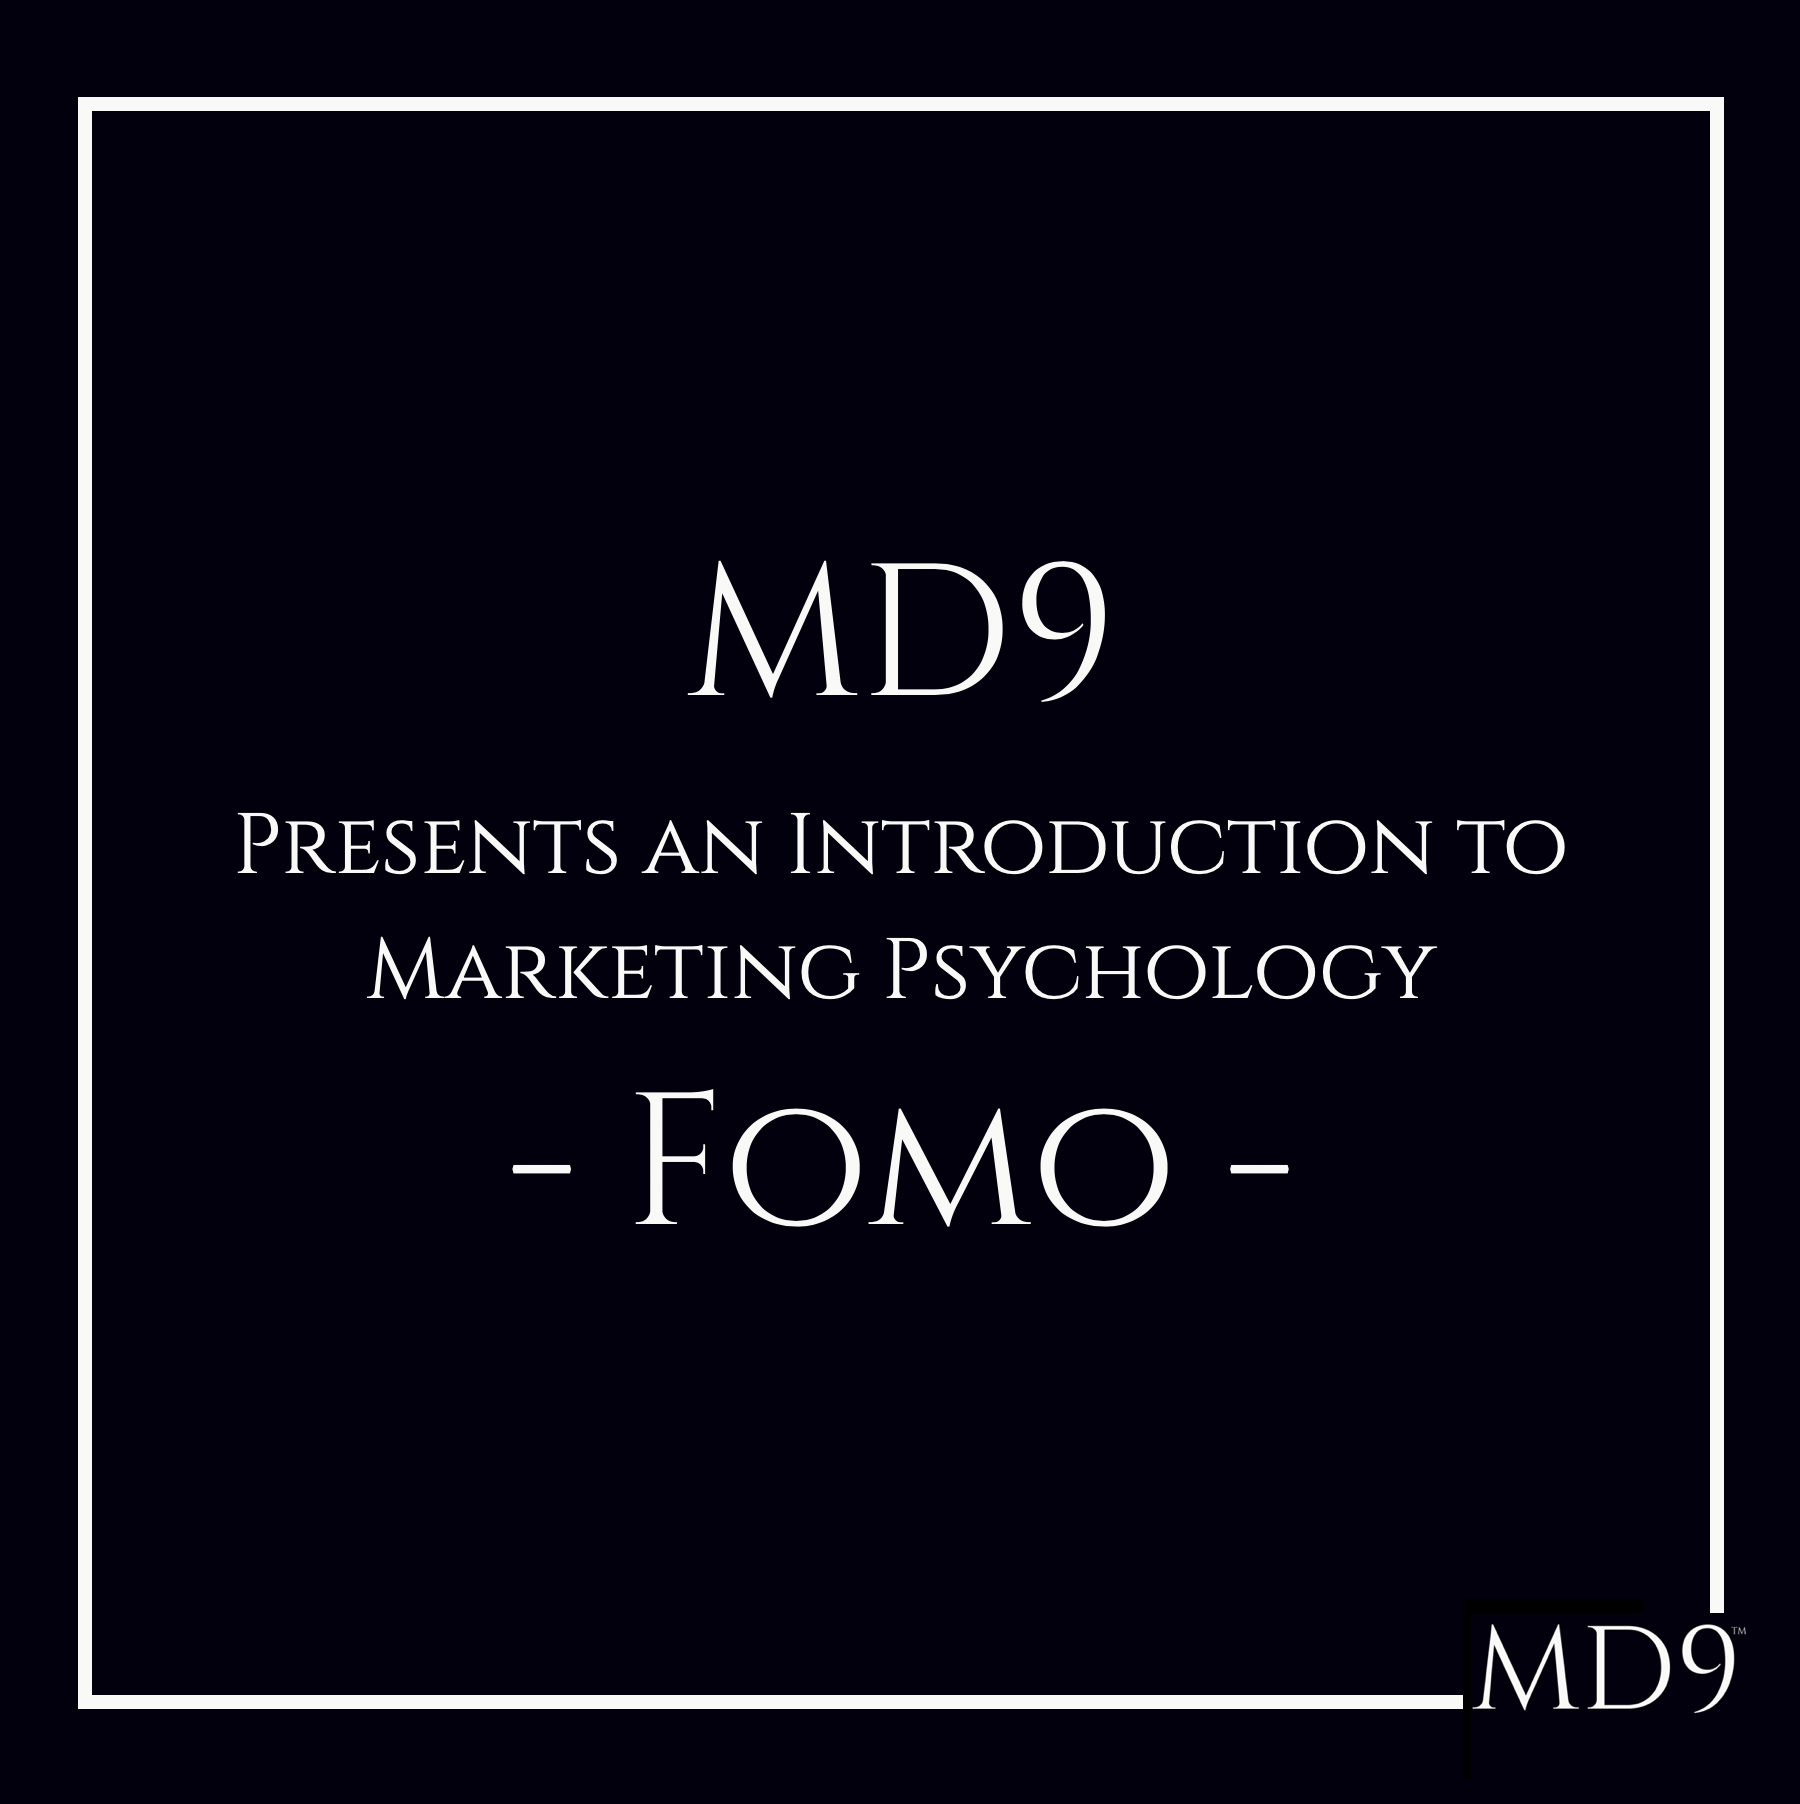 MD9's Introduction To Marketing Psychology – Fomo